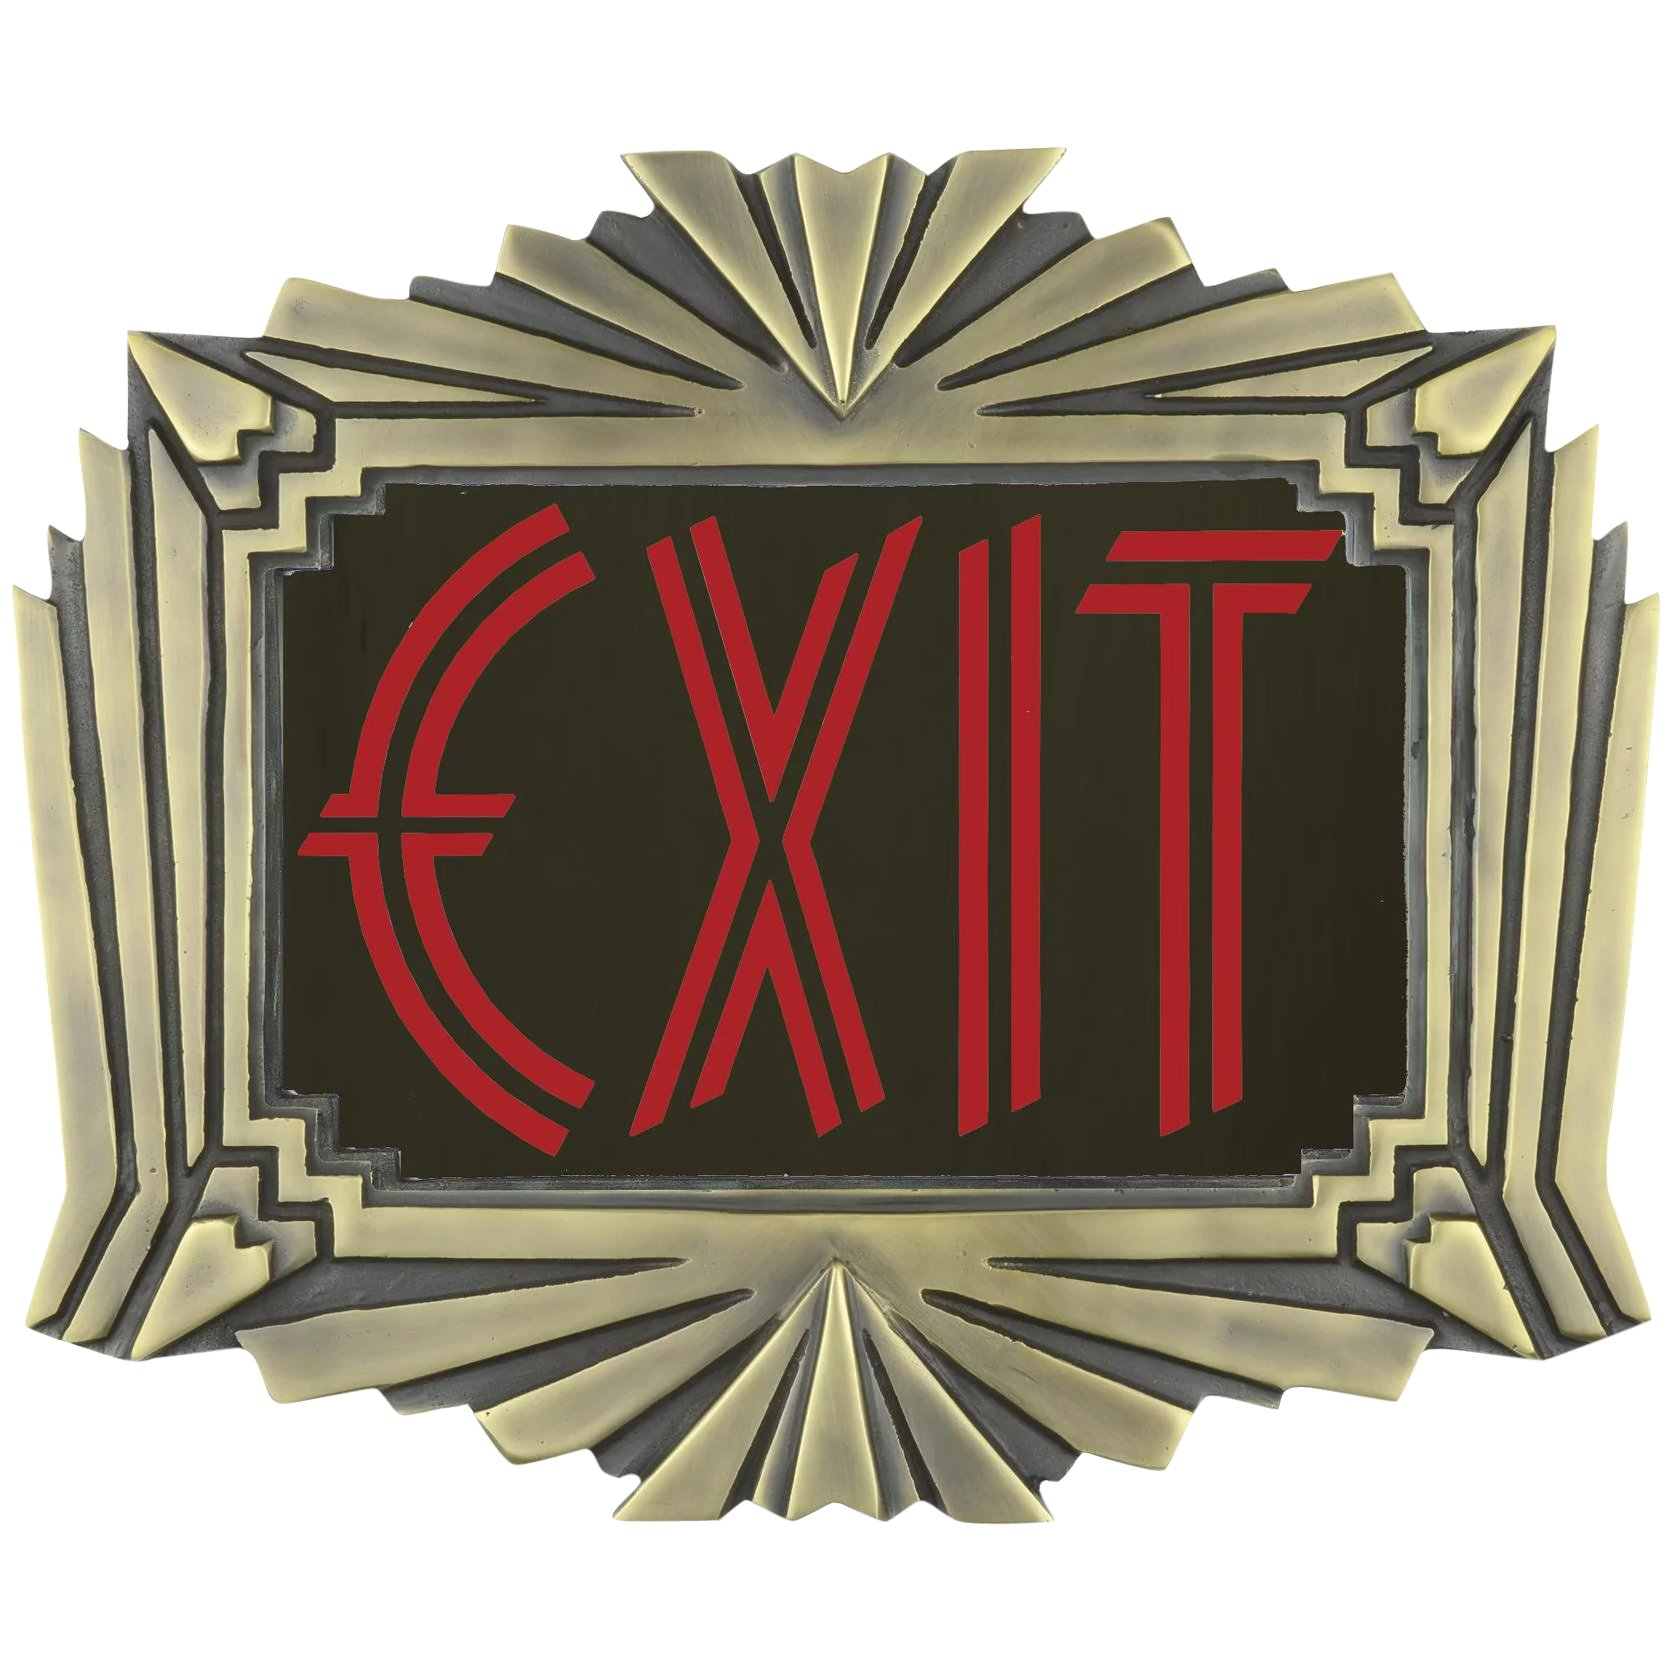 Art Deco Style & Light Theater Or Commercial Fancy Solid Brass Art Deco Style Exit Sign Ext 422r